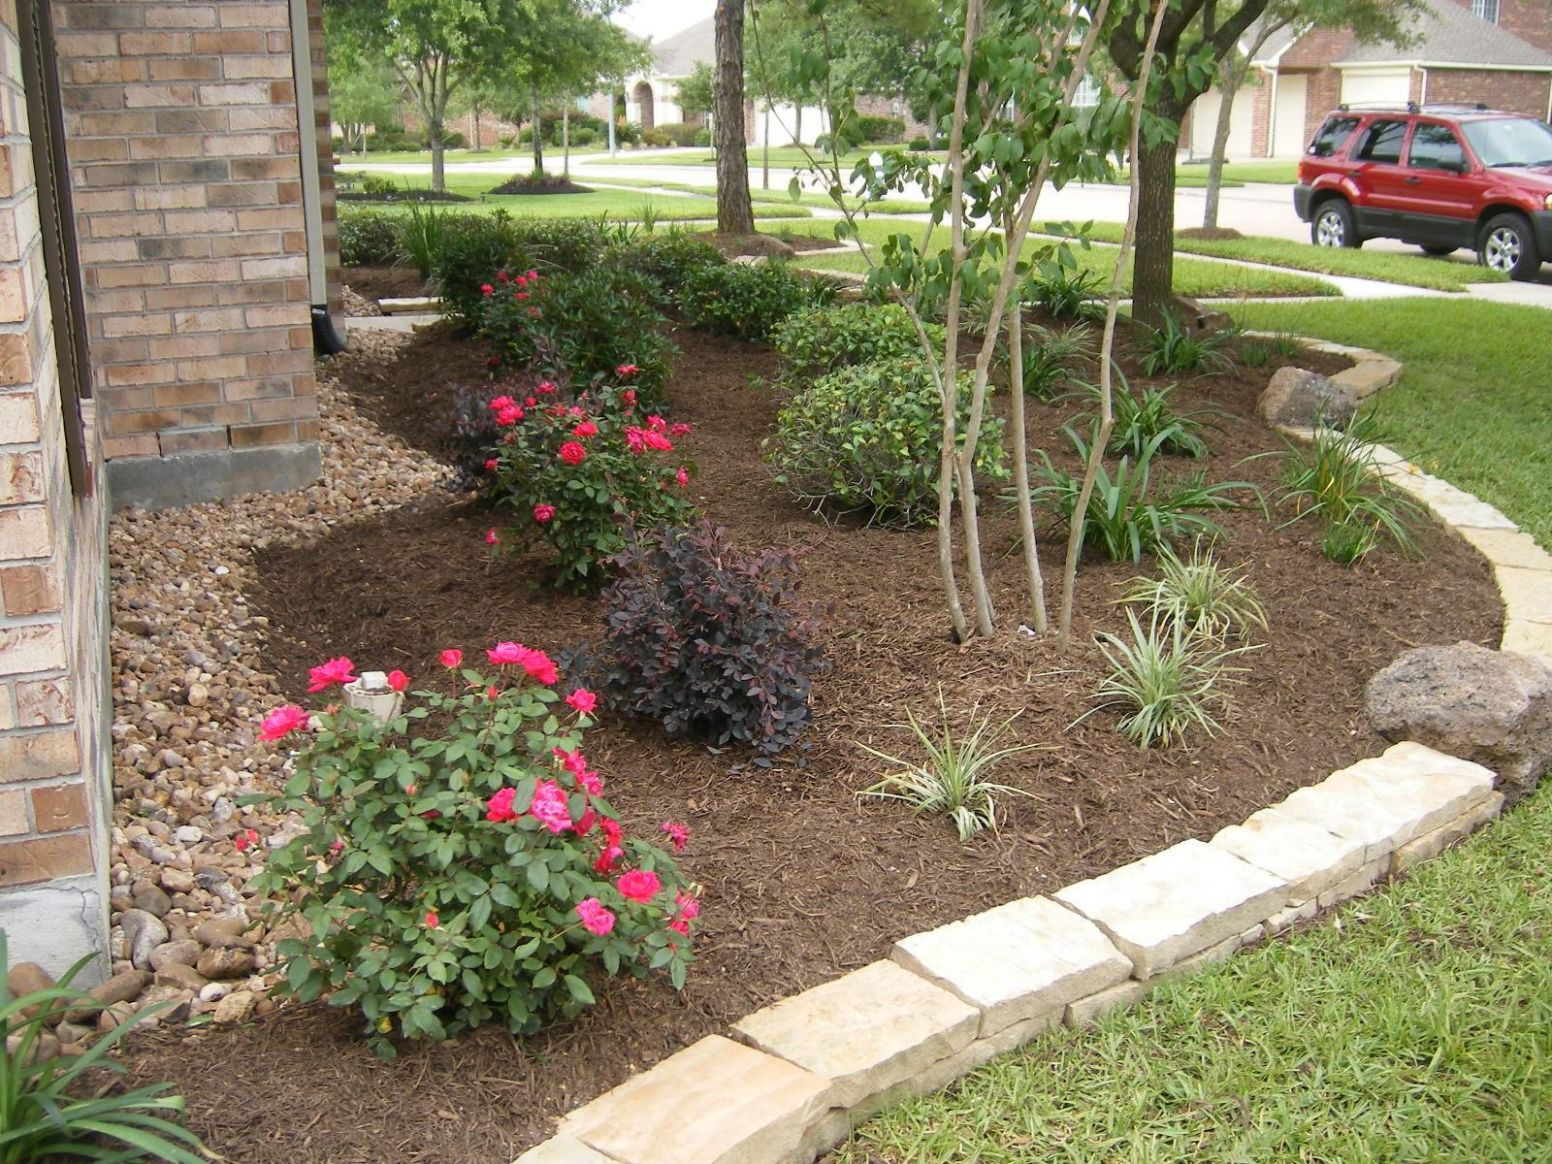 Texas Flower Bed Landscaping Backyard Ideas Houston Loversiq ..